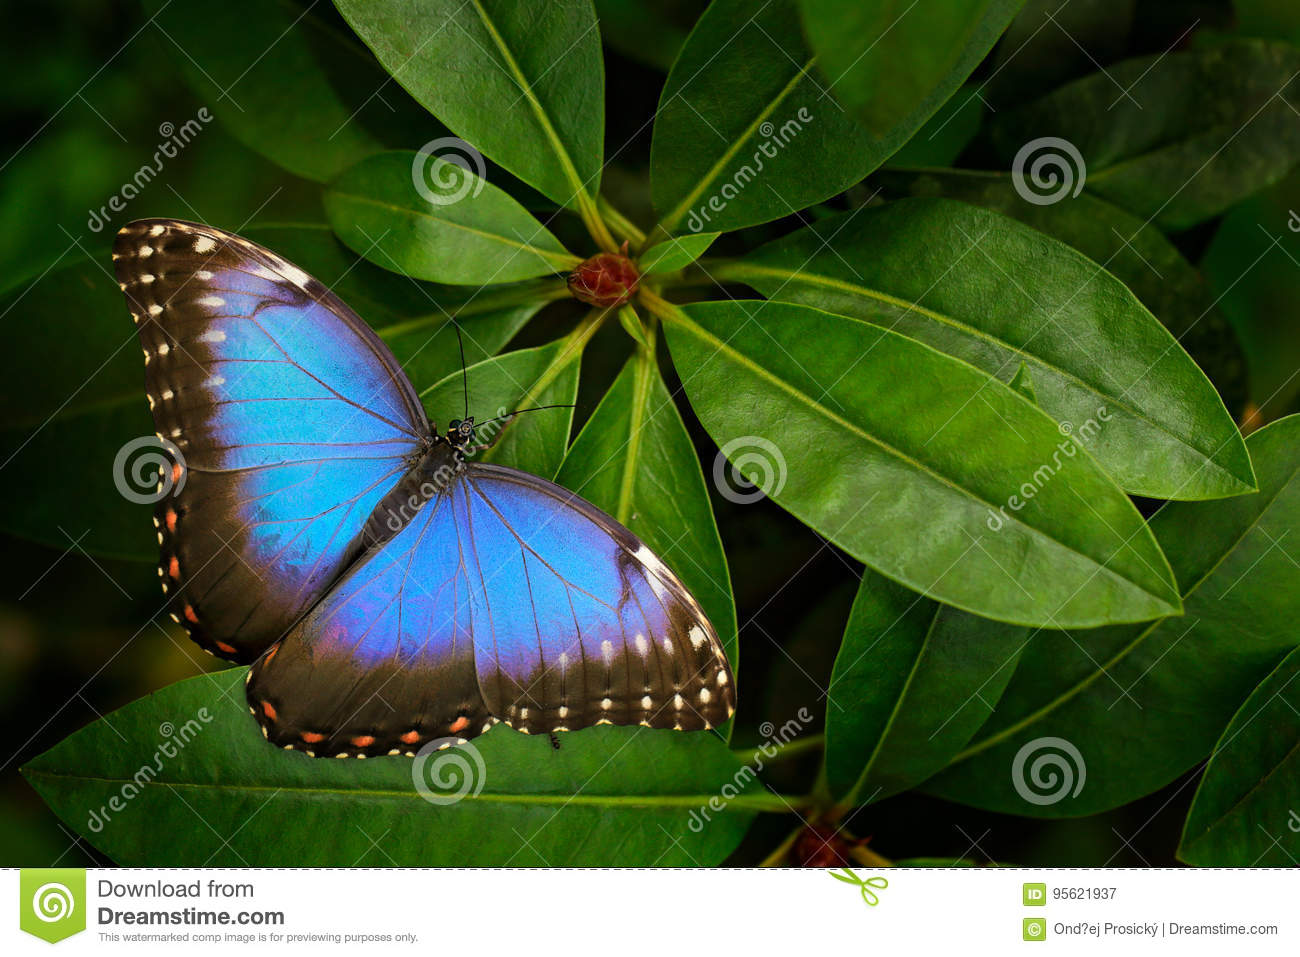 Tropic nature in Costa Rica. Blue butterfly, Morpho peleides, sitting on green leaves. Big butterfly in forest. Dark green vegetat